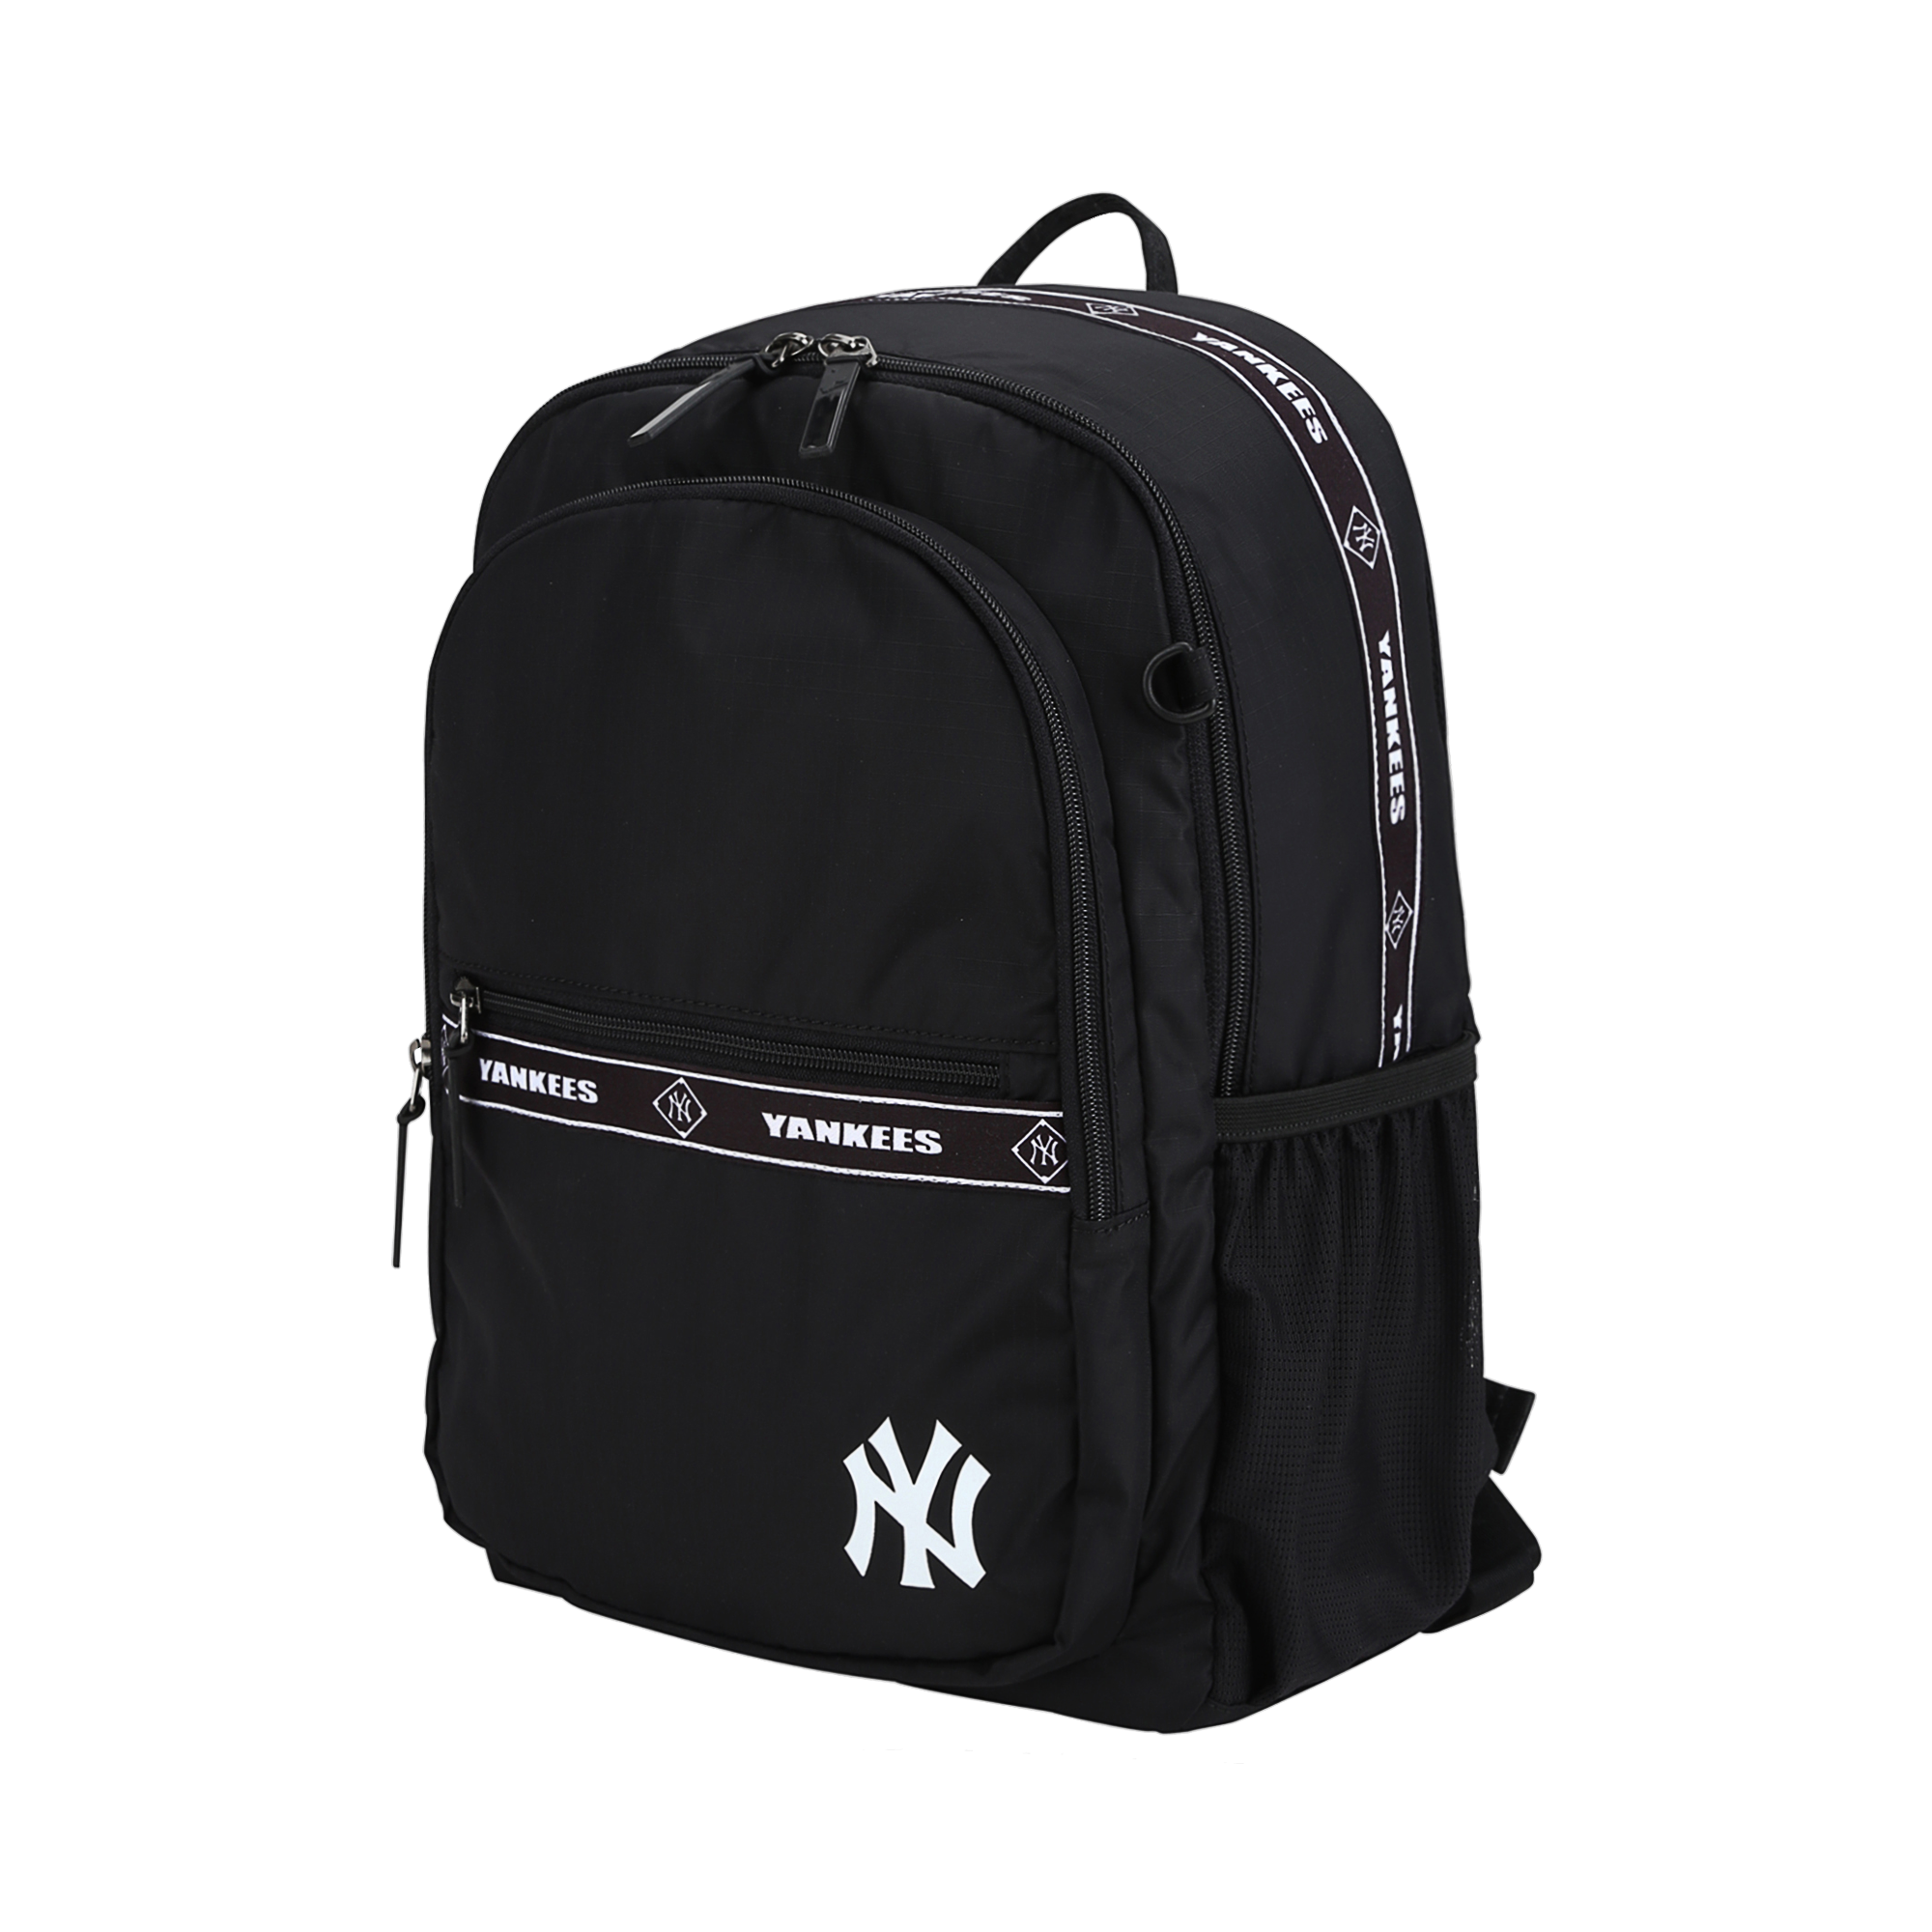 NEW YORK YANKEES TAPE POINT BACKPACK